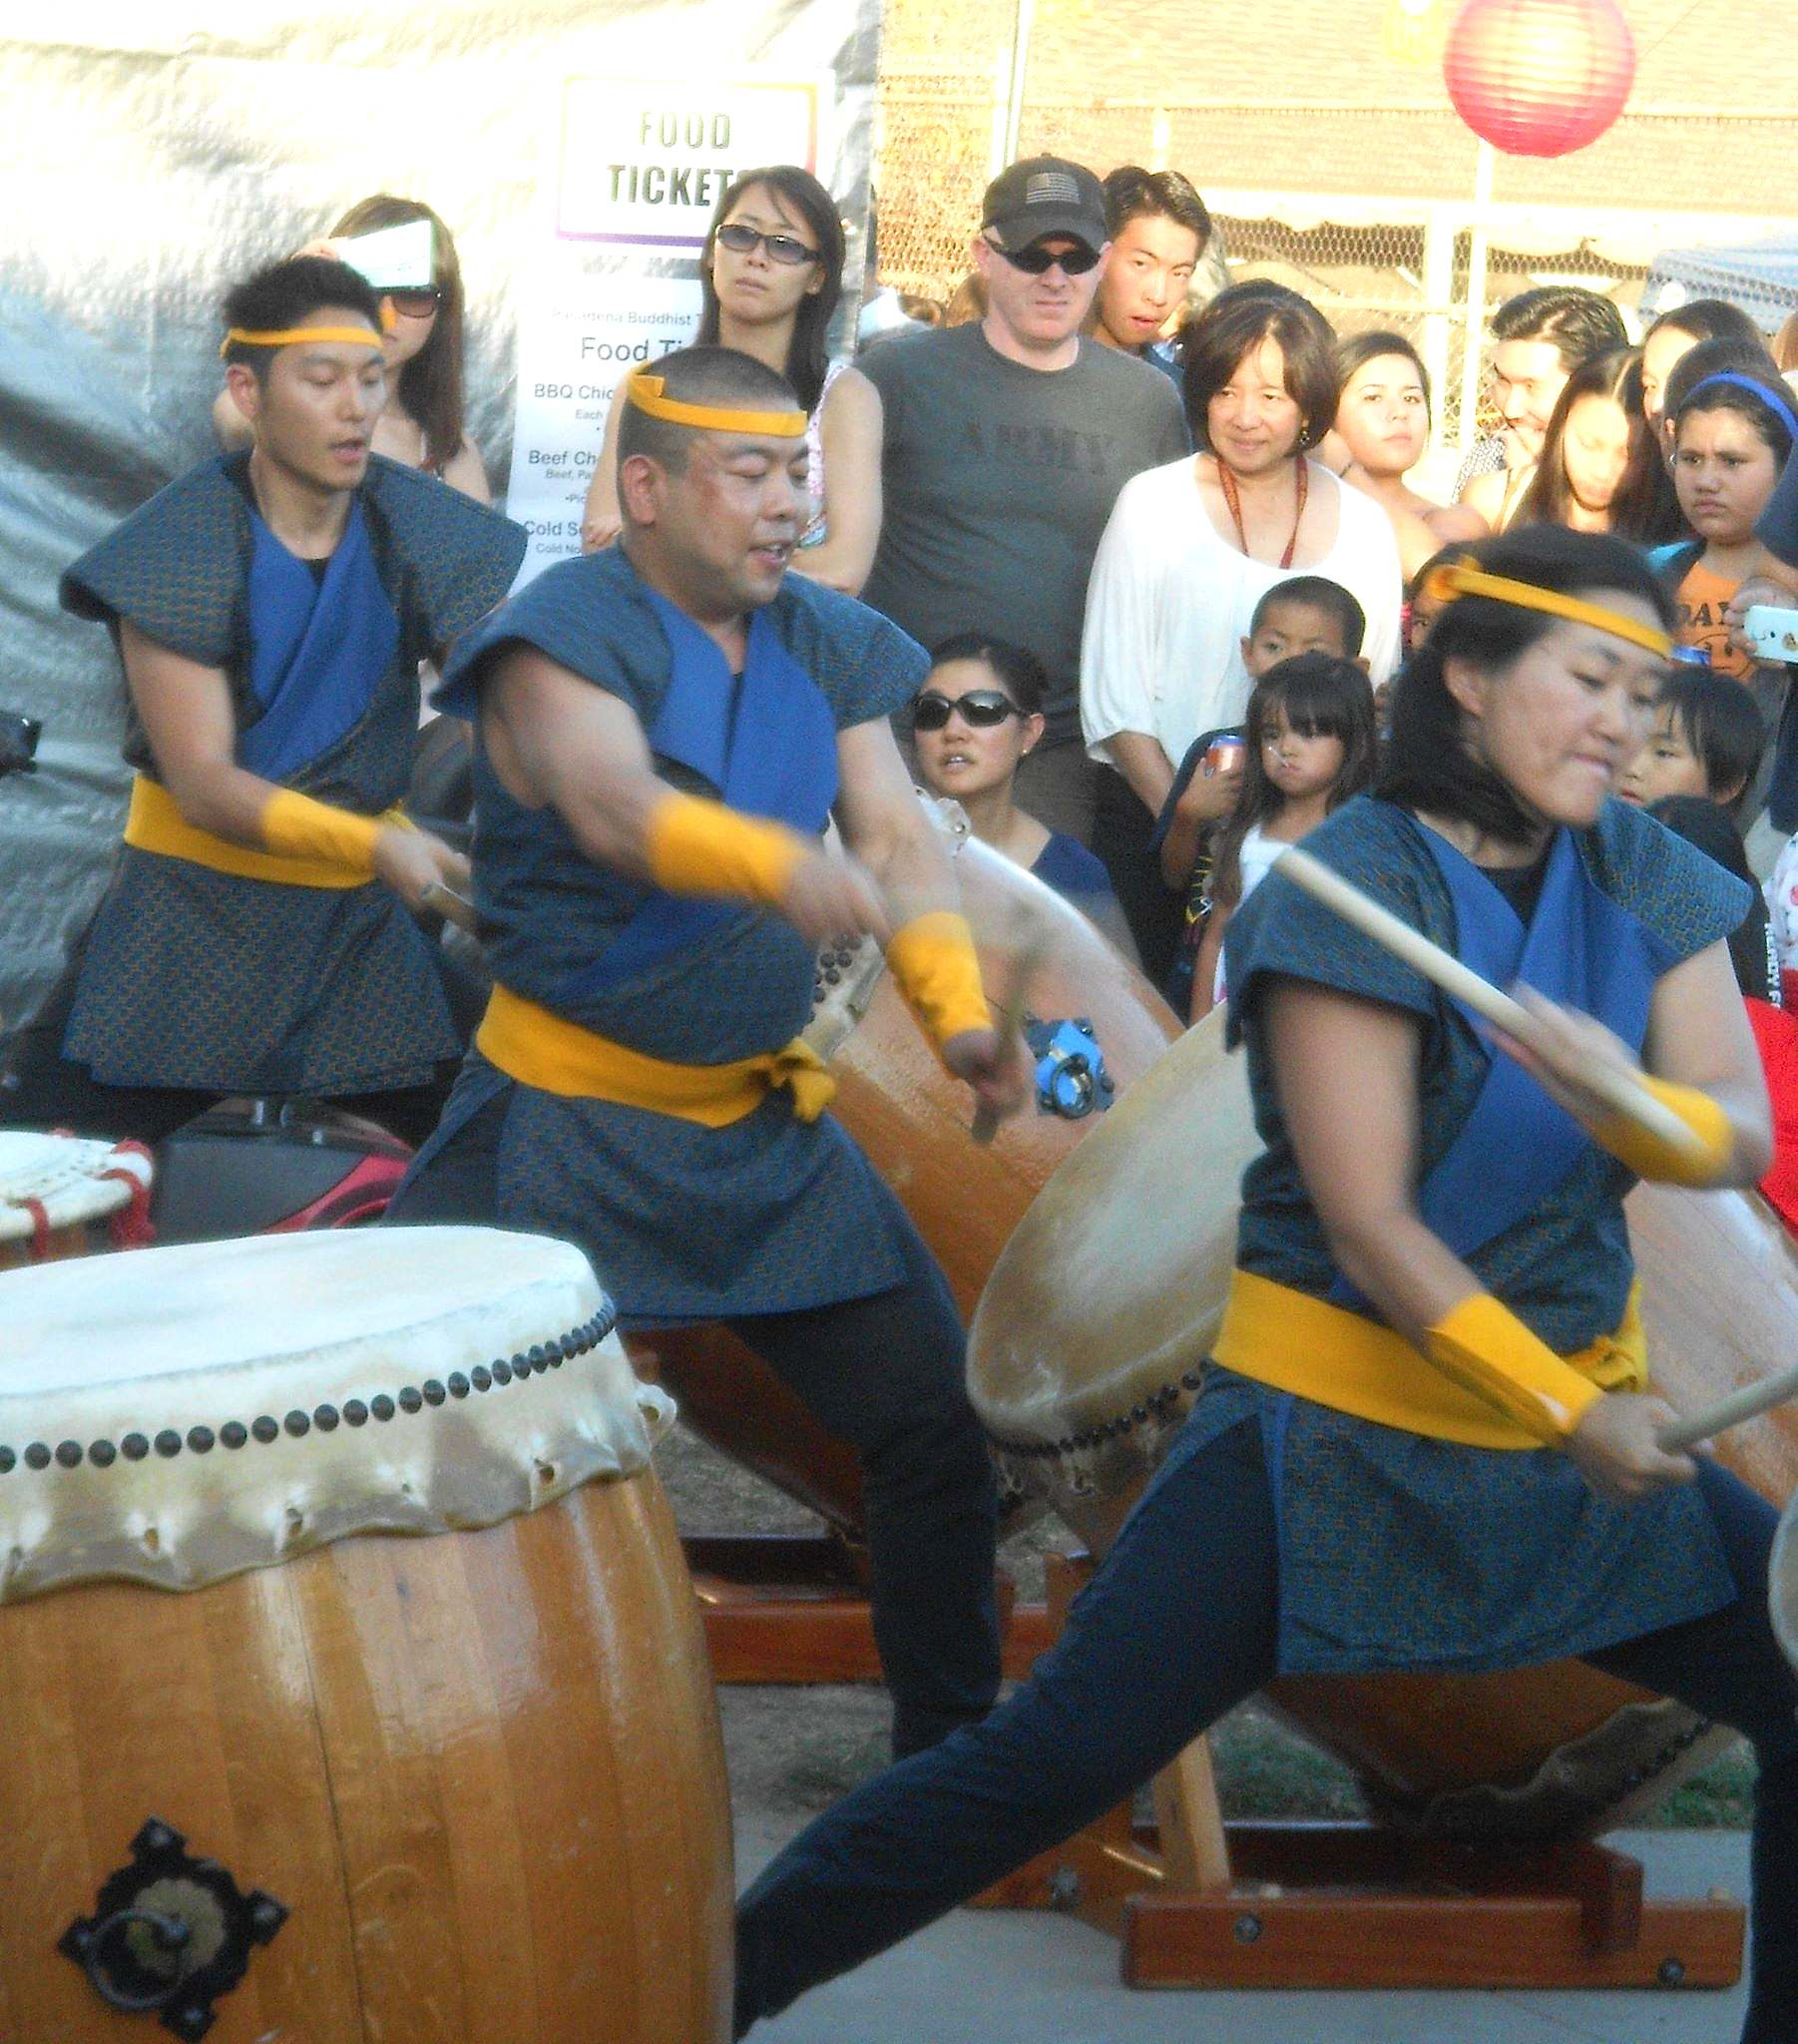 Pasadena Buddhist Temples Annual Obon Festival This Weekend